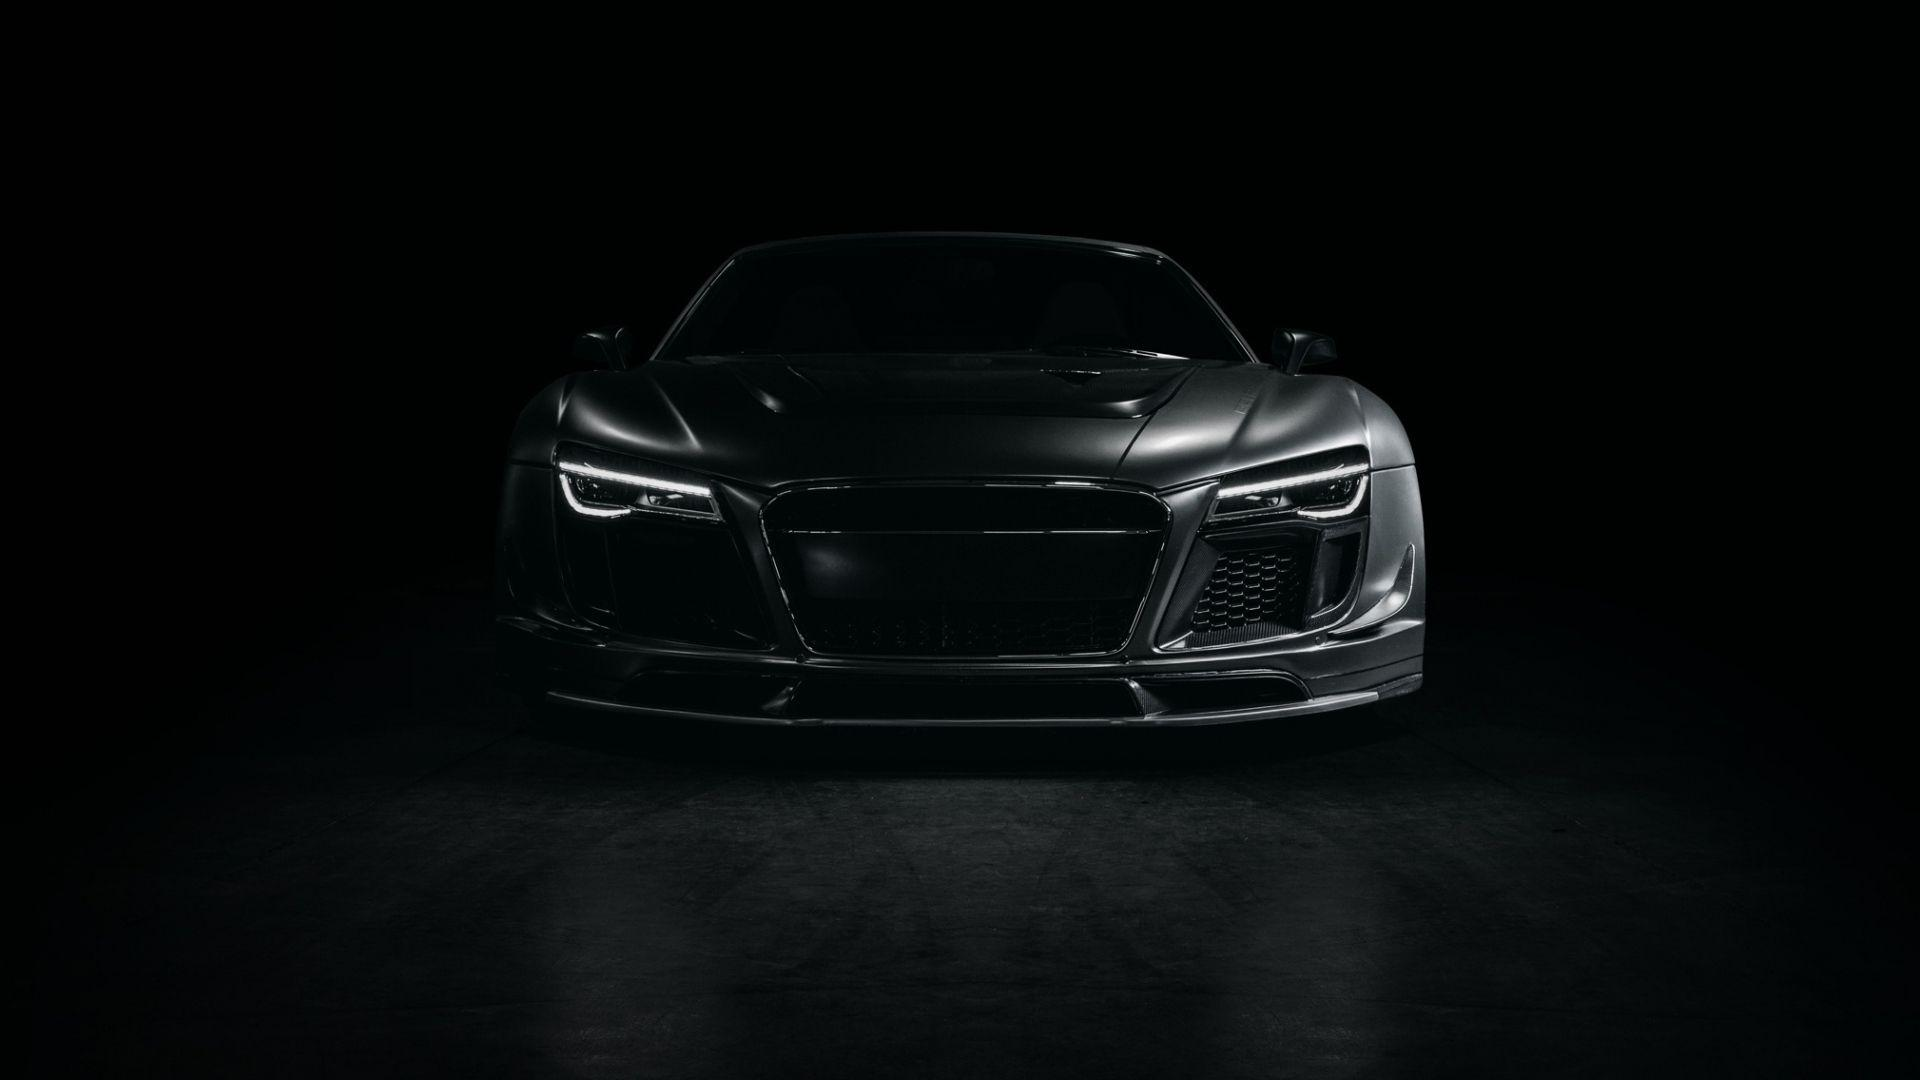 Full HD 1080p Audi Wallpapers HD, Desktop Backgrounds 1920x1080 ...